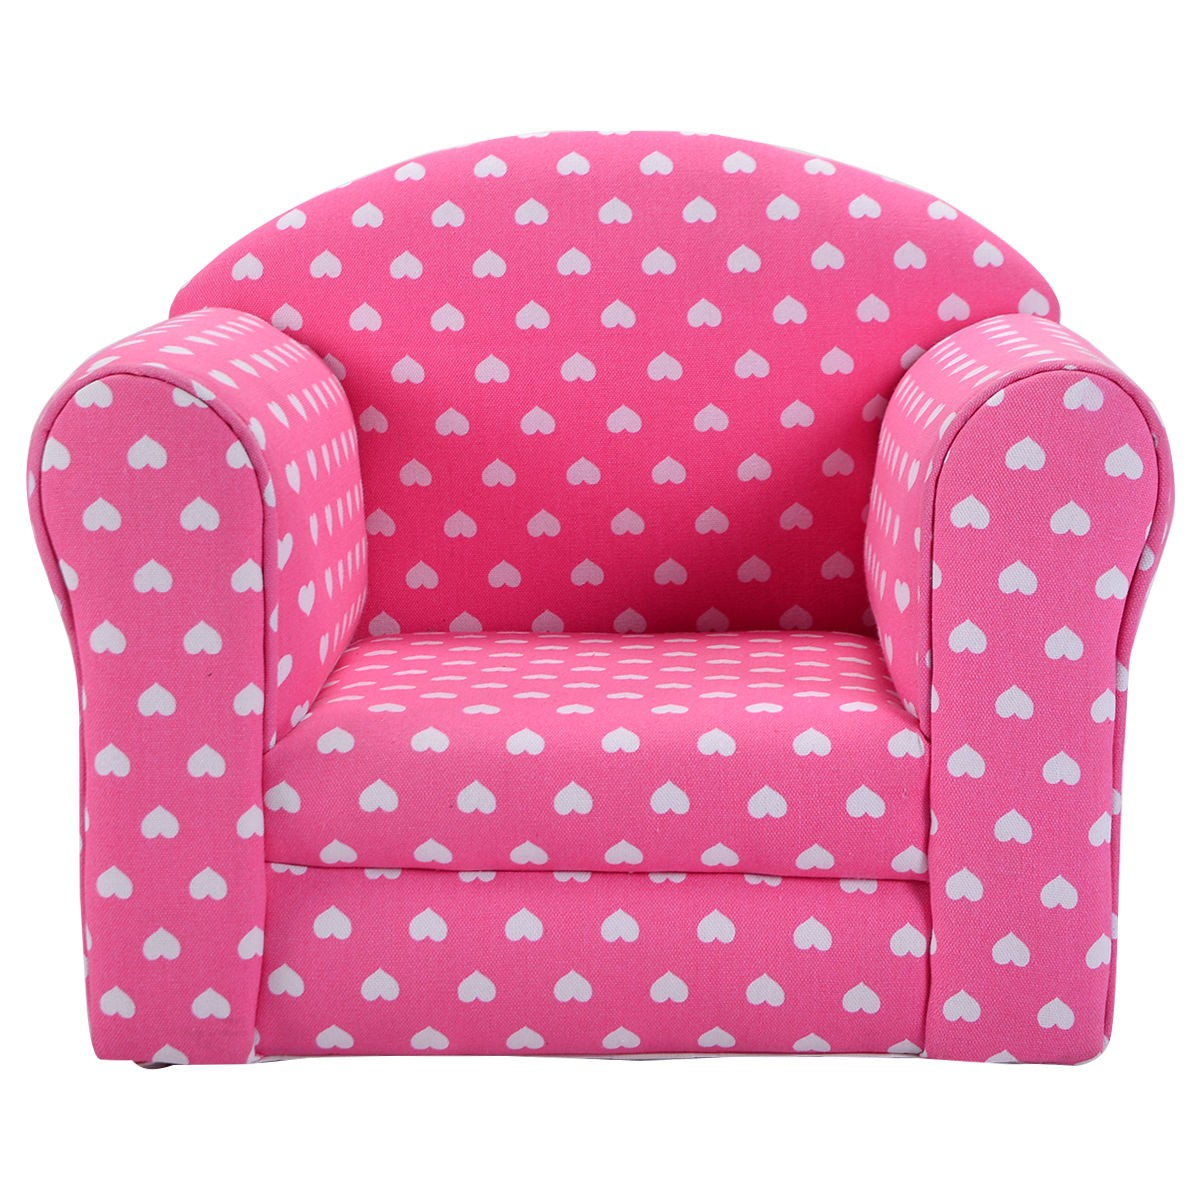 Toddler Couch Baby Kids Sofa Armrest Chair Couch Children Living Room